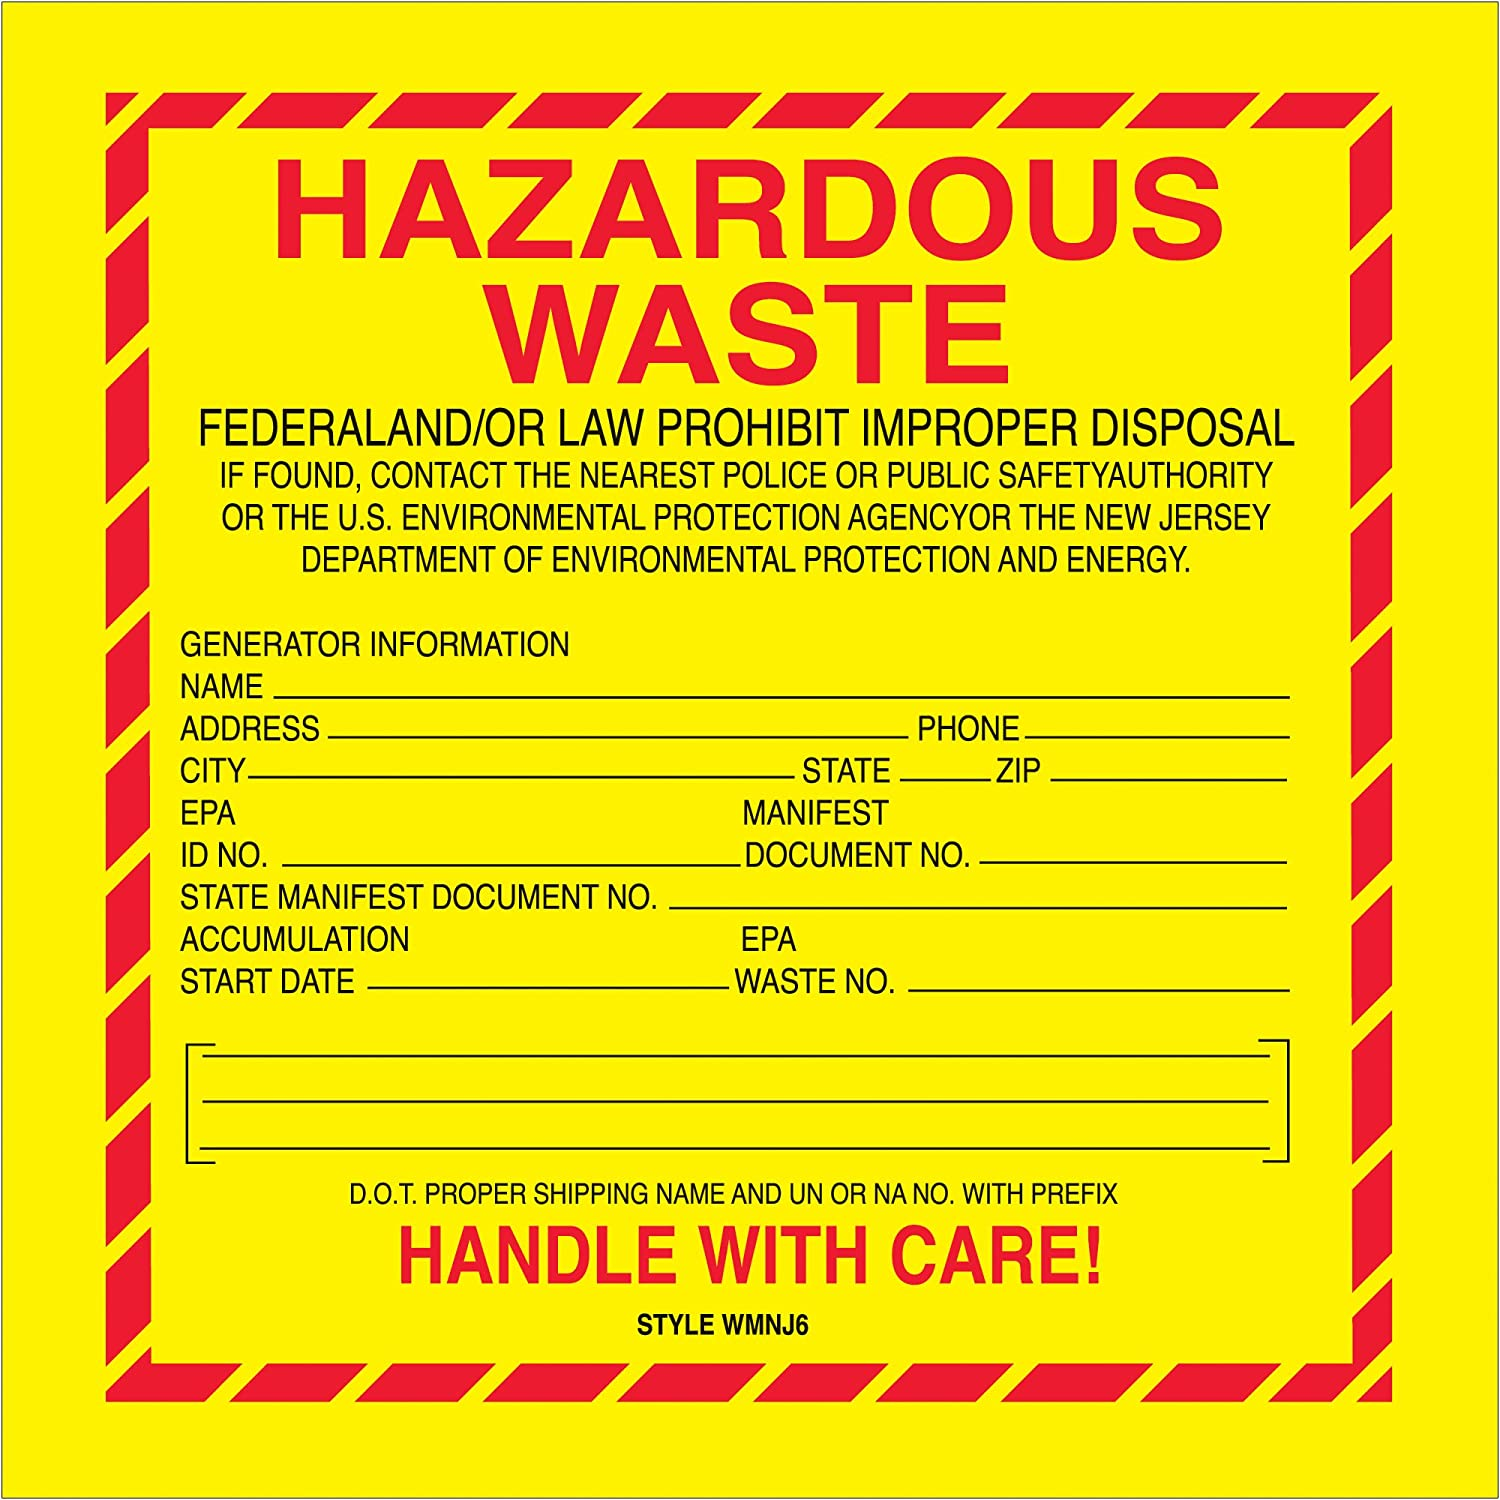 New Jersey 6 x 6 500//Roll Poly Bag Guy Tape Logic Labels,Hazardous Waste Red//Yellow//Black